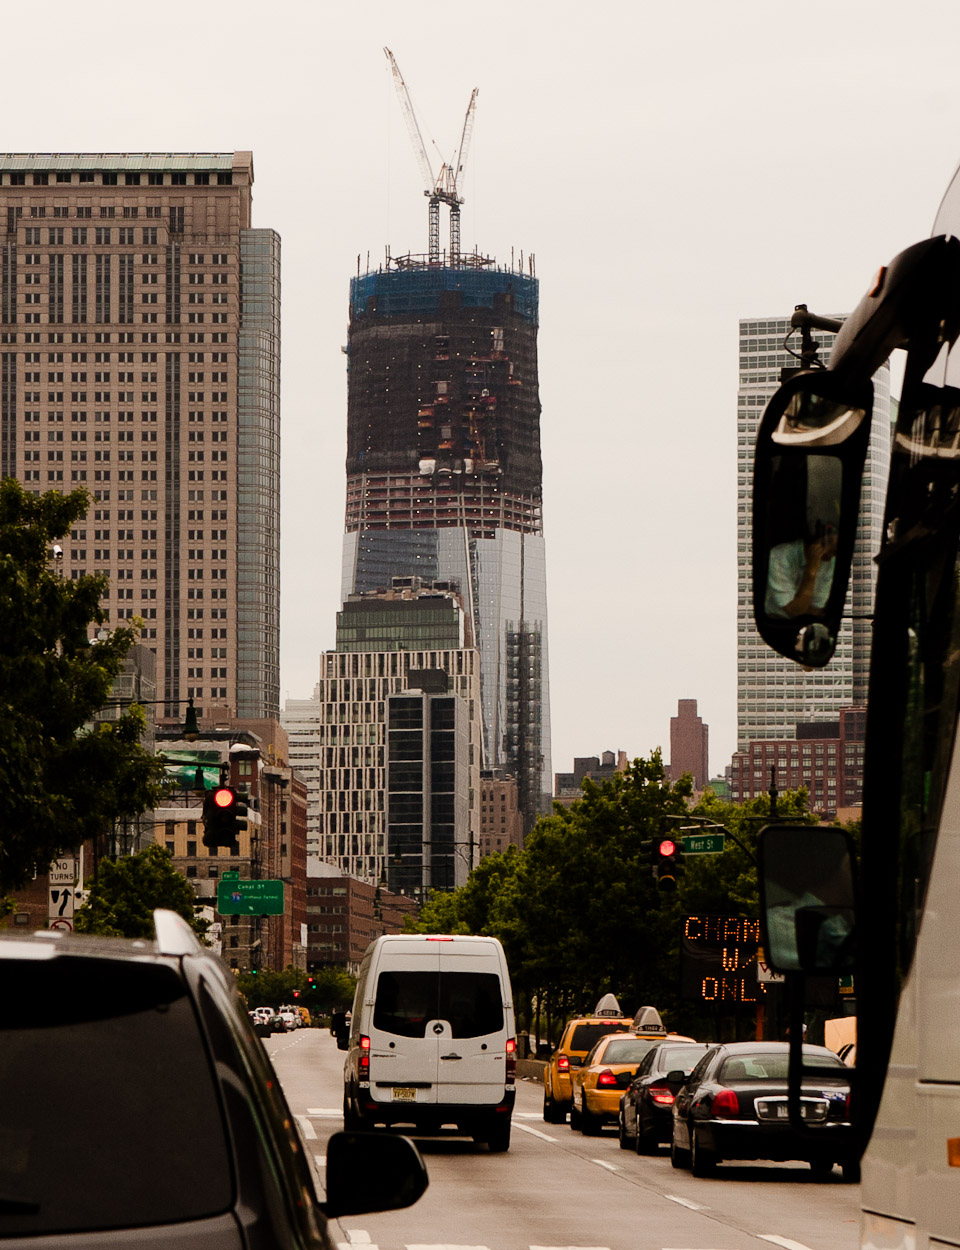 I was riding down the west side highway and saw that the new world trade center is much further along than I expected.